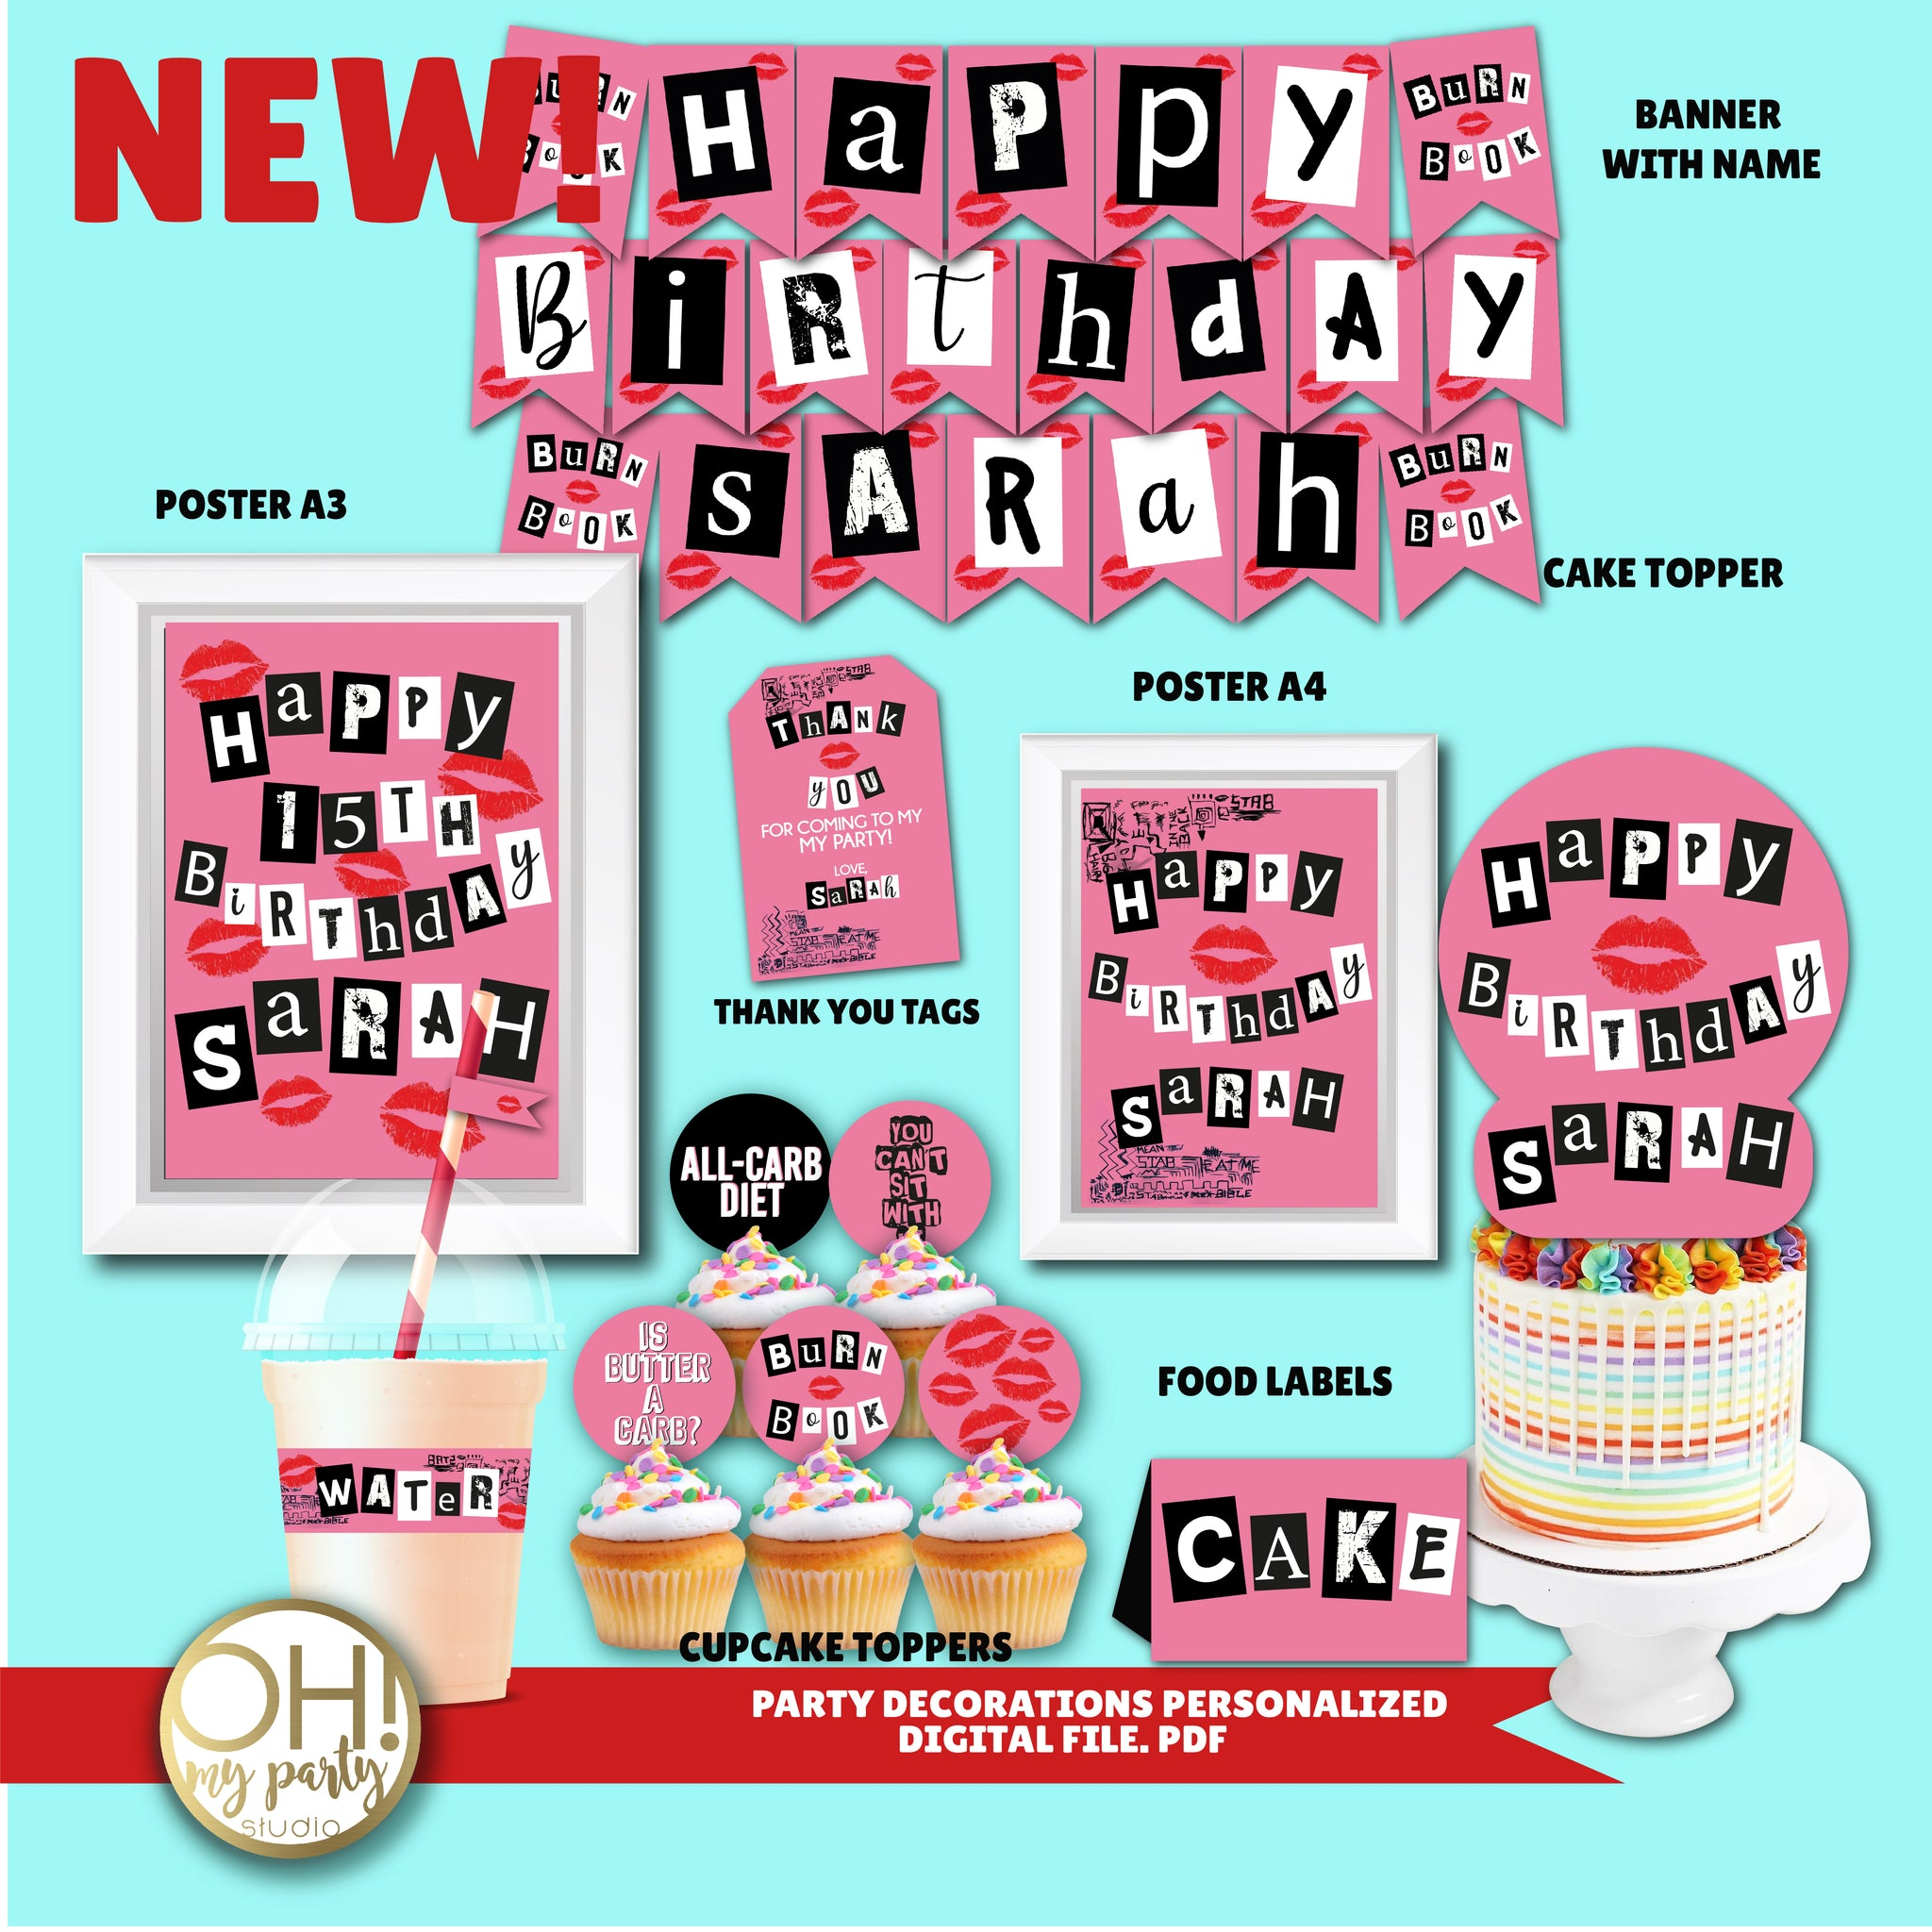 MEAN GIRLS BIRTHDAY PARTY DECORATIONS, MEAN GIRLS PARTY IDEAS, MEAN GIRLS PARTY SUPPLIES, MEAN GIRLS PARTY PRINTABLES, MEAN GIRLS PARTY DECORATIONS, MEAN GIRLS PARTY THEME, MEAN GIRLS PARTY DECORATIONS, MEAN GIRLS BIRTHDAY PARTY, MEAN GIRLS BACHELORETTE